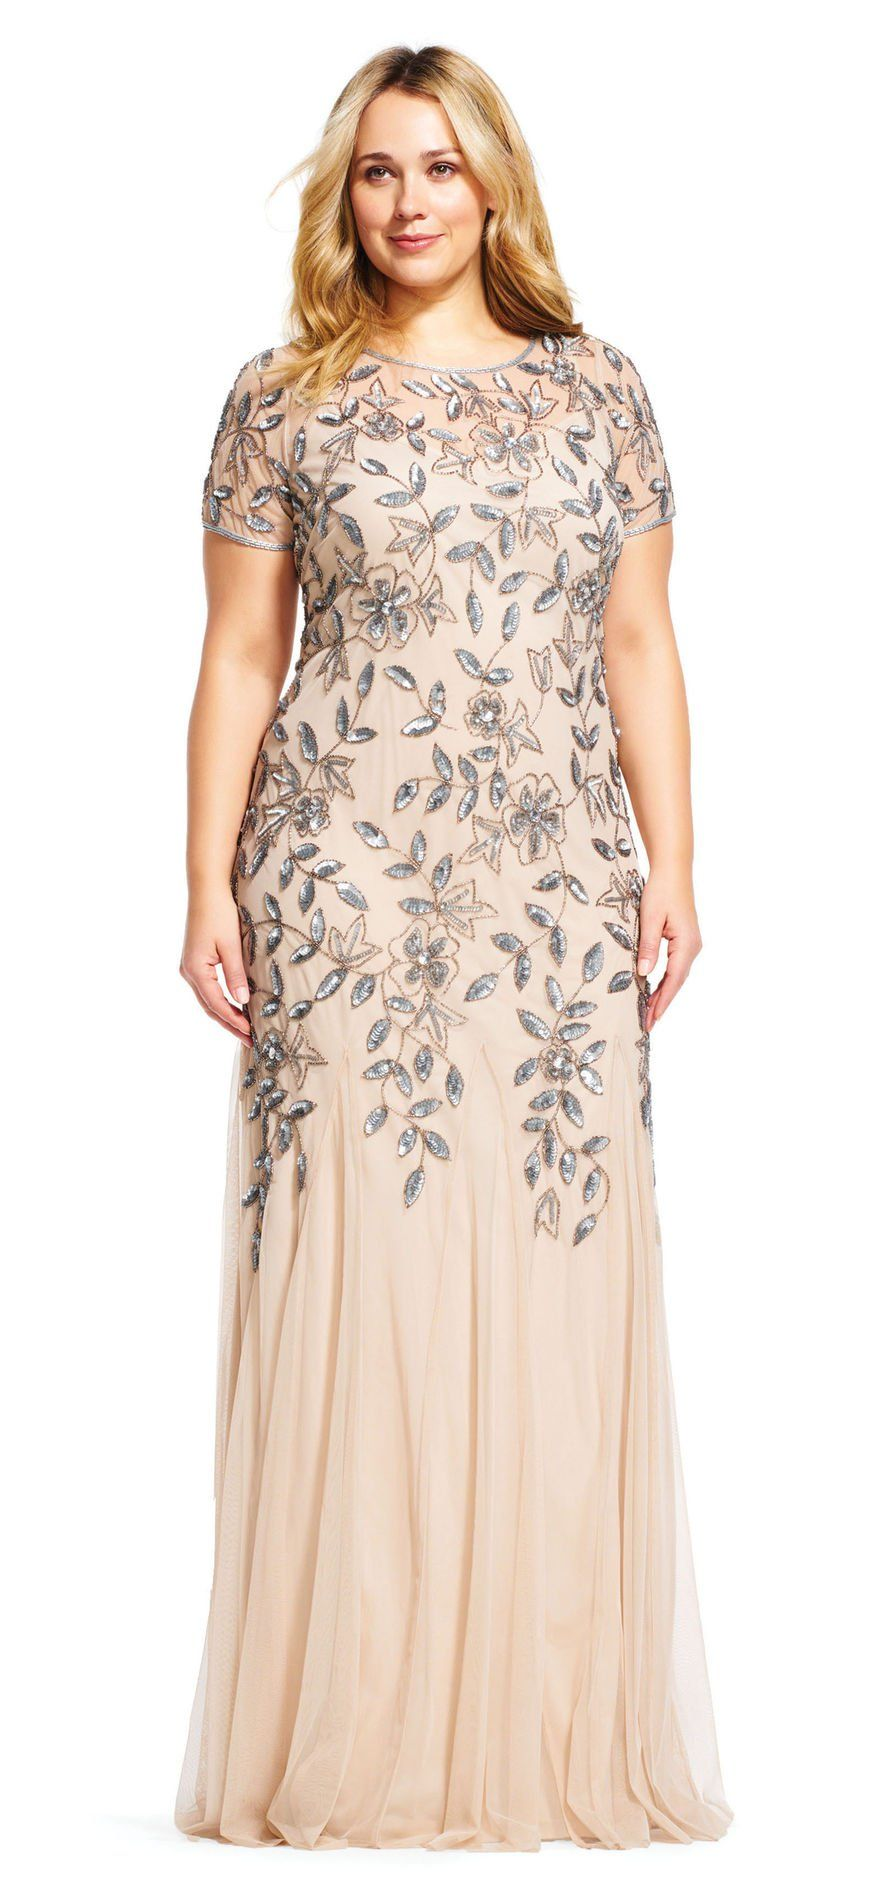 d8c0c8961a07 Floral Beaded Godet Gown with Sheer Short Sleeves in 2019